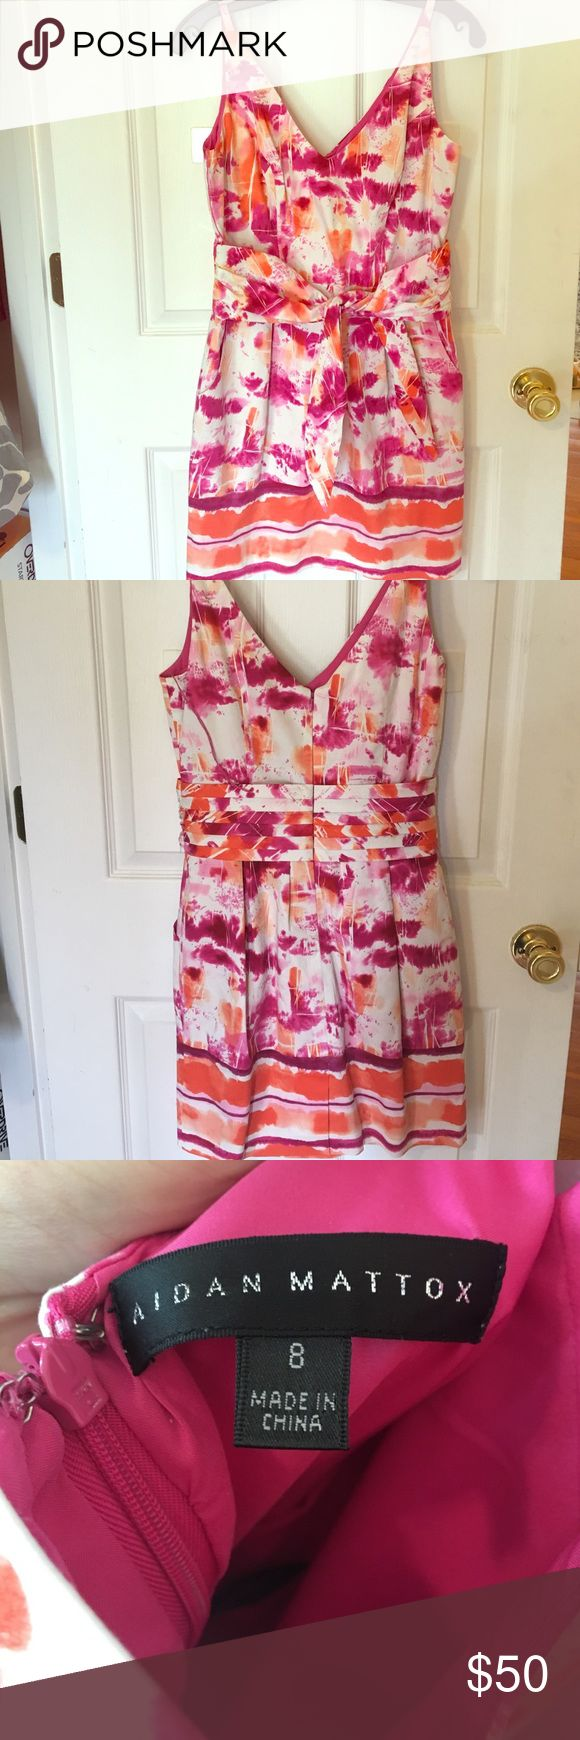 Aidan Mattox dress size 8 Authentic Aidan Mattox dress, vibrant colors, the only flaw I see is the sash stitches are sagging a bit, easily fixable but not noticeable when worn. Only worn once. Aidan Mattox Dresses